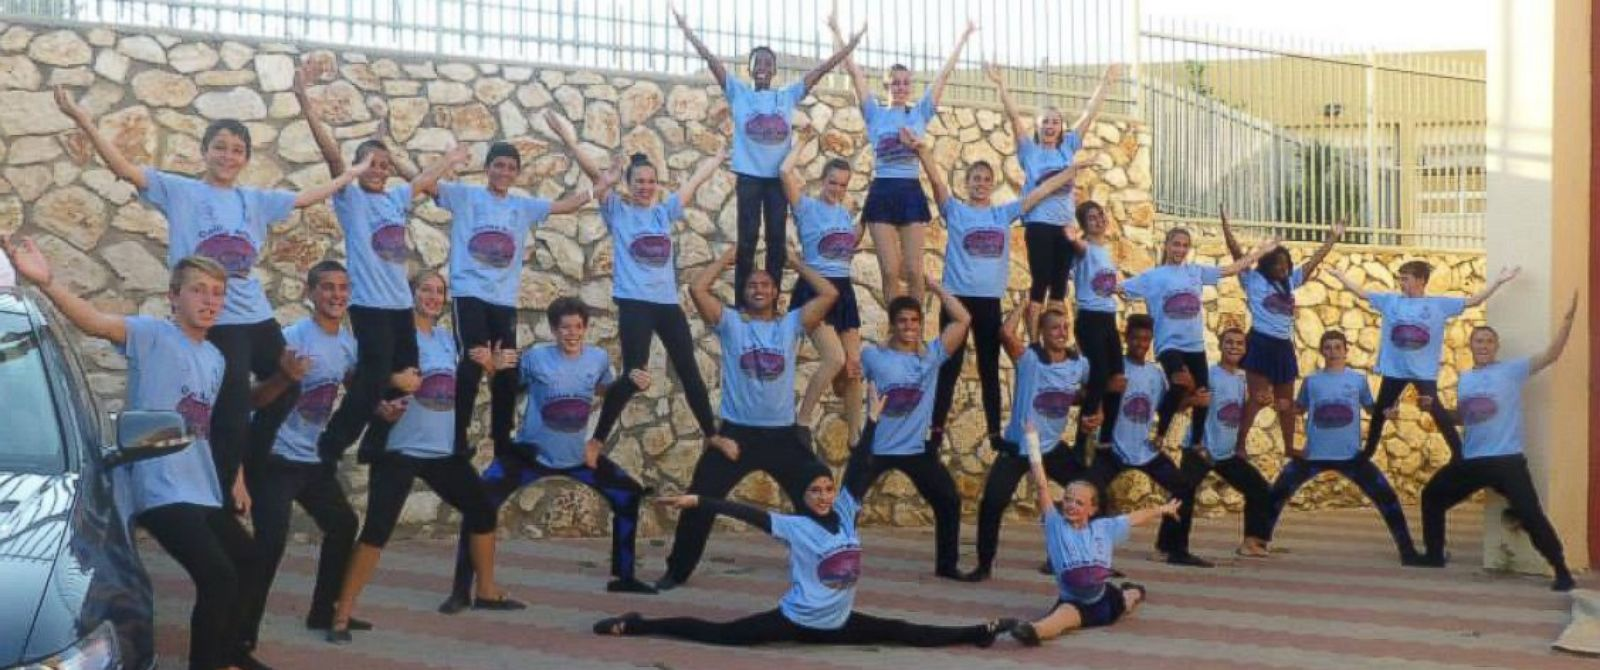 PHOTO: Circus Harmony, a Missouri circus group, has been traveling to Israel since 2007 to work with a youth circus in Galilee that includes both Jewish and Arab children.